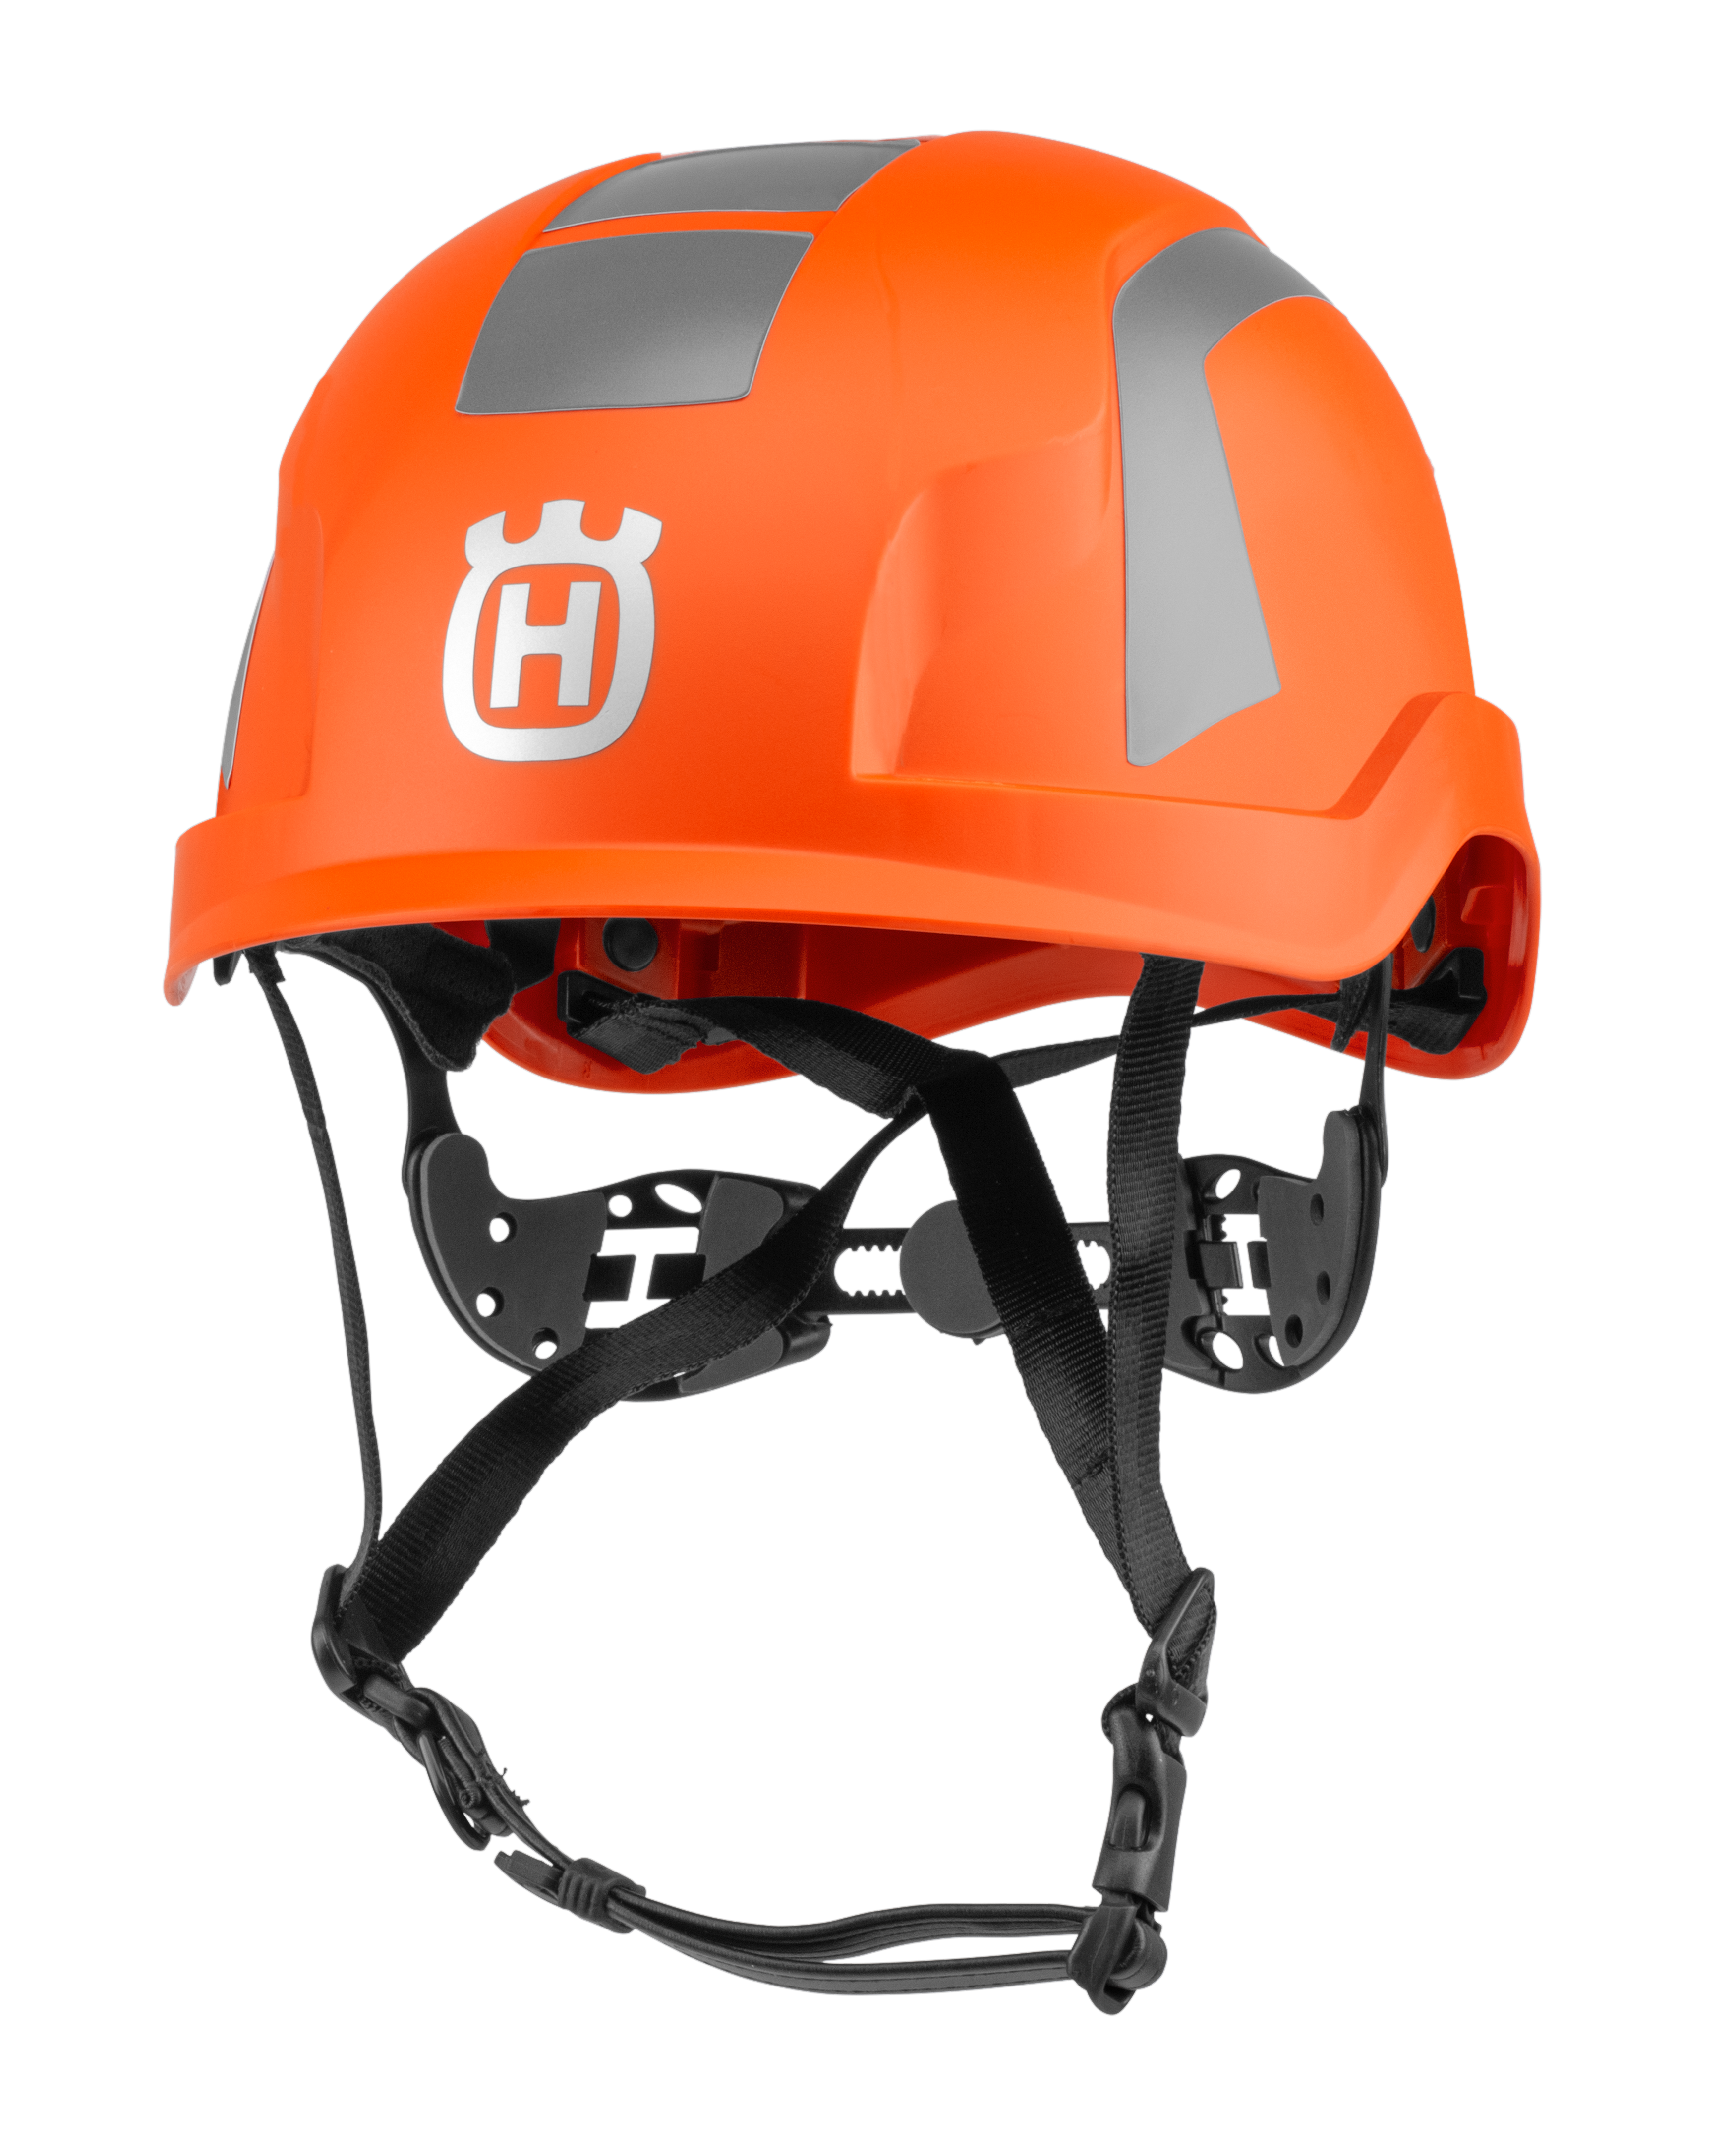 Image for Spire™ Arborist Helmet                                                                                                         from HusqvarnaB2C